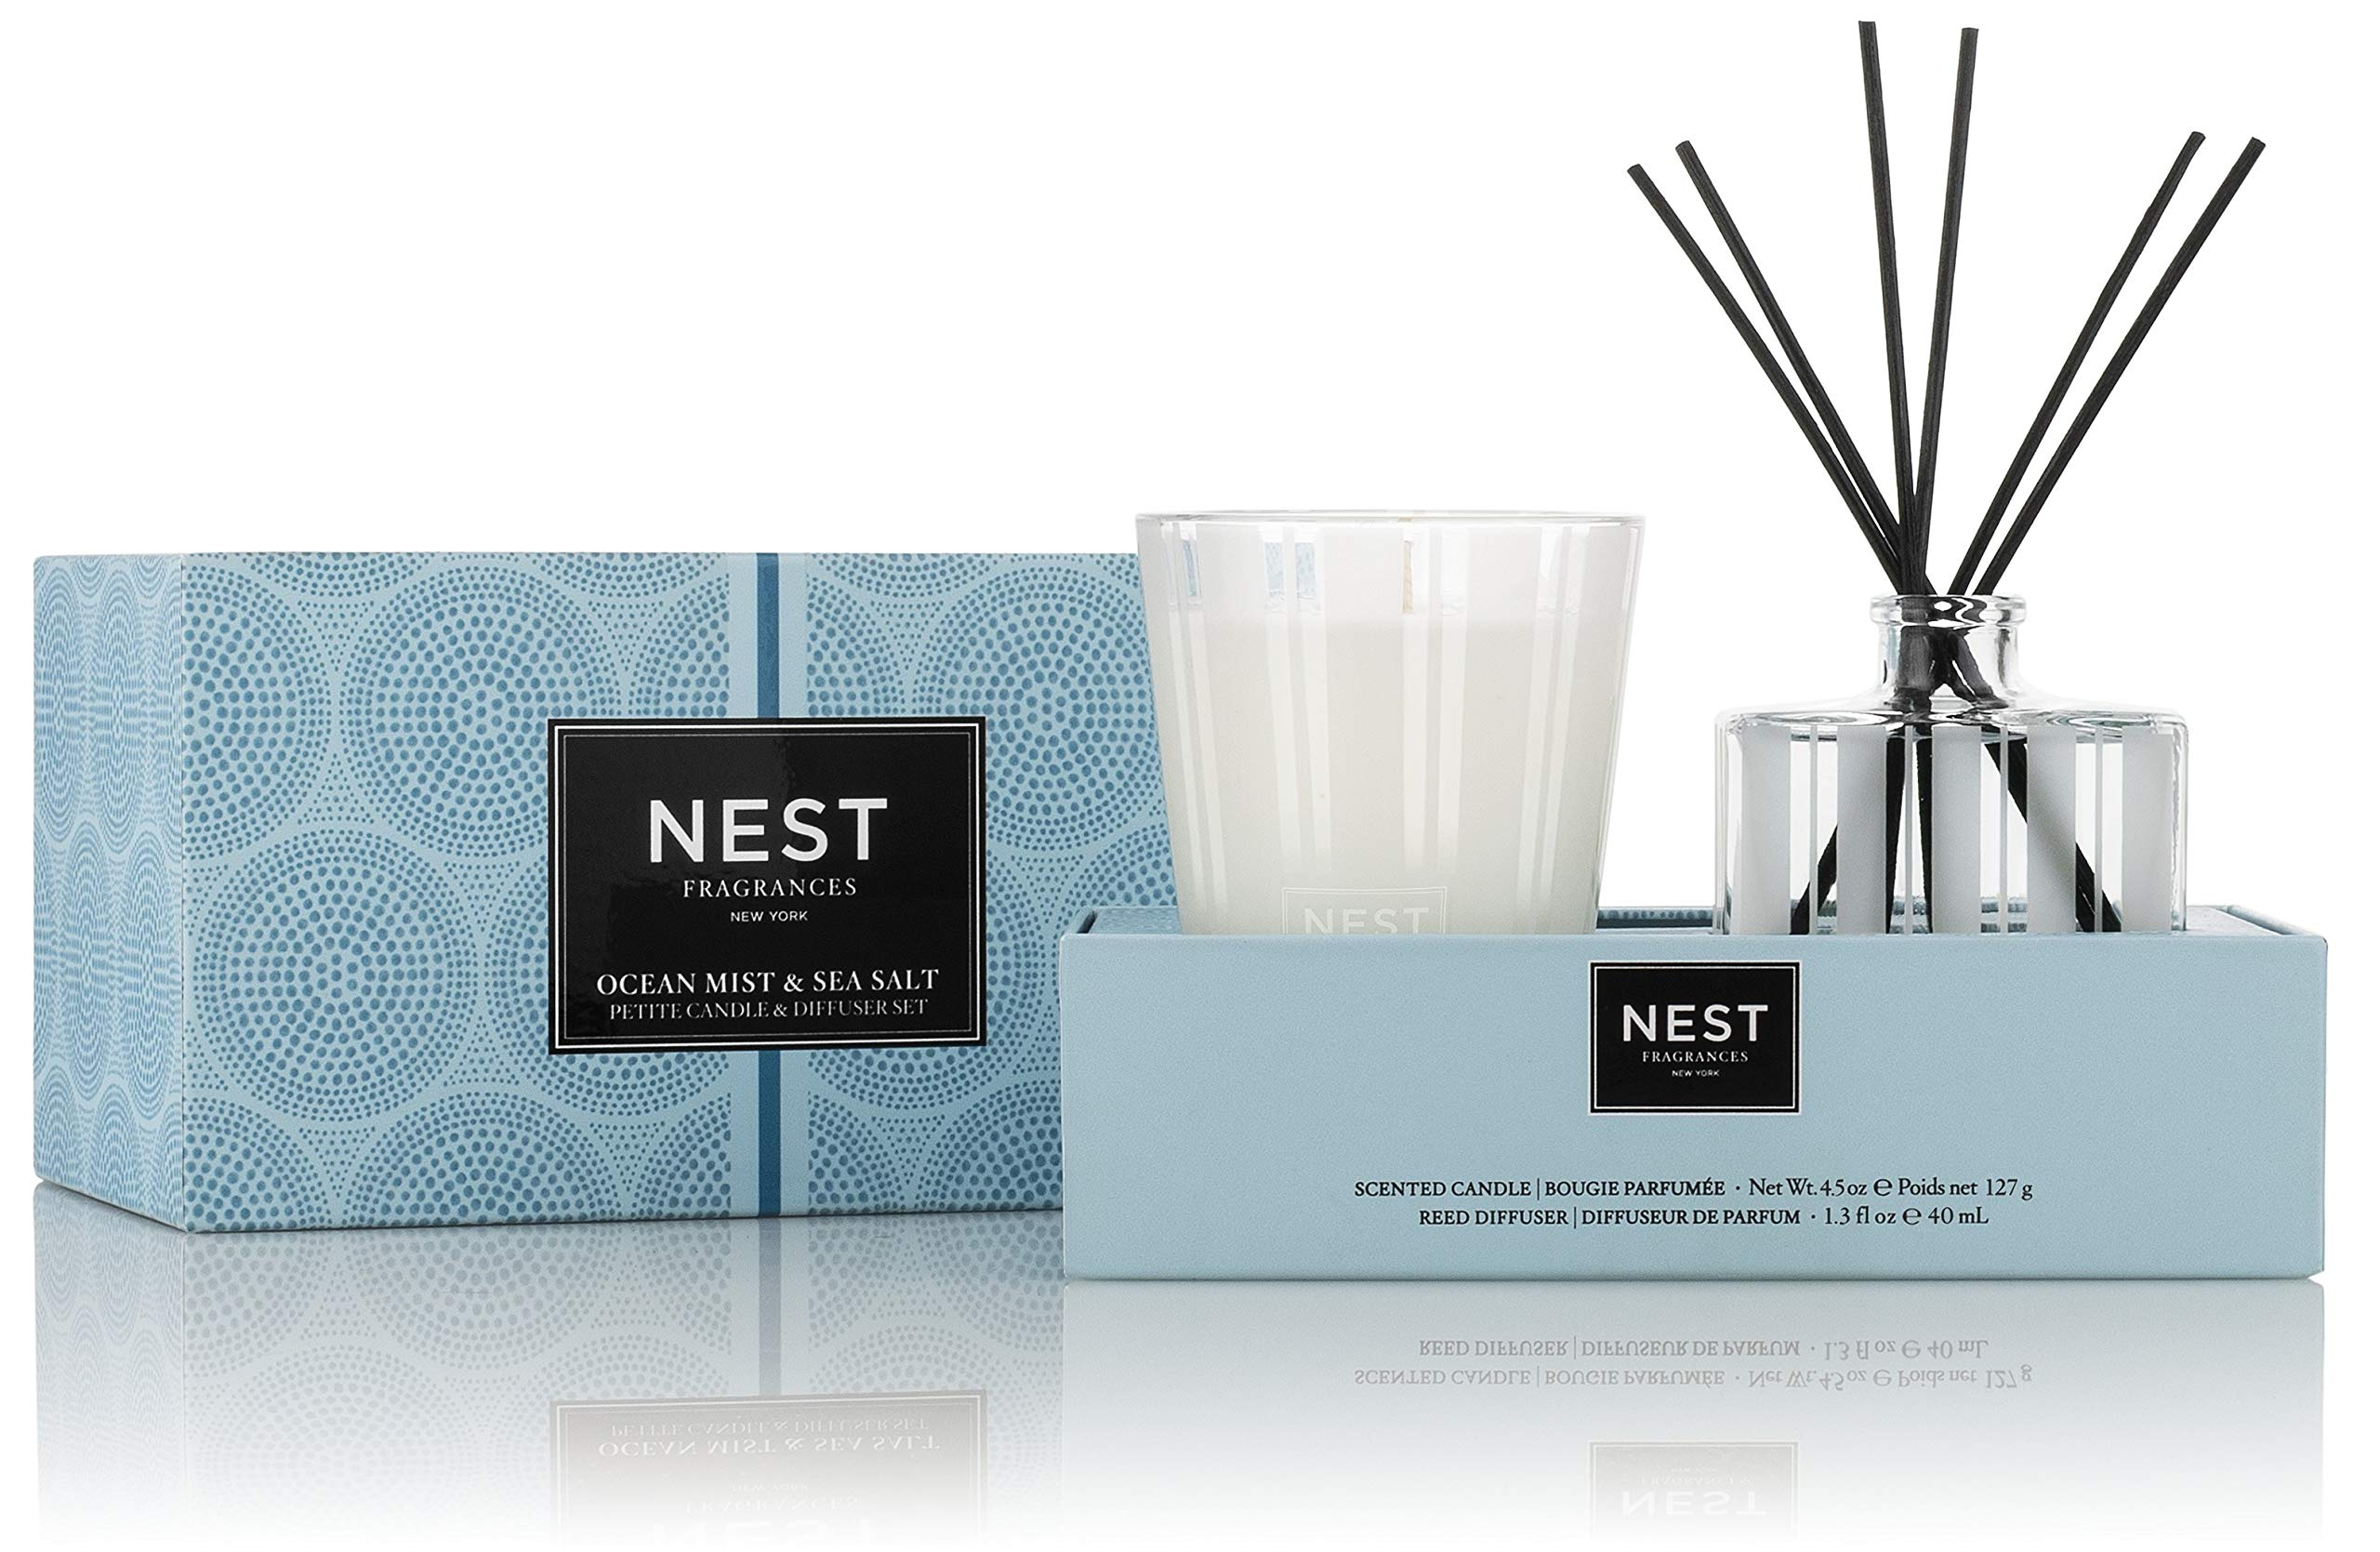 NEST Fragrances Ocean Mist & Sea Salt Petite Candle & Reed Diffuser Set by NEST Fragrances (Image #1)